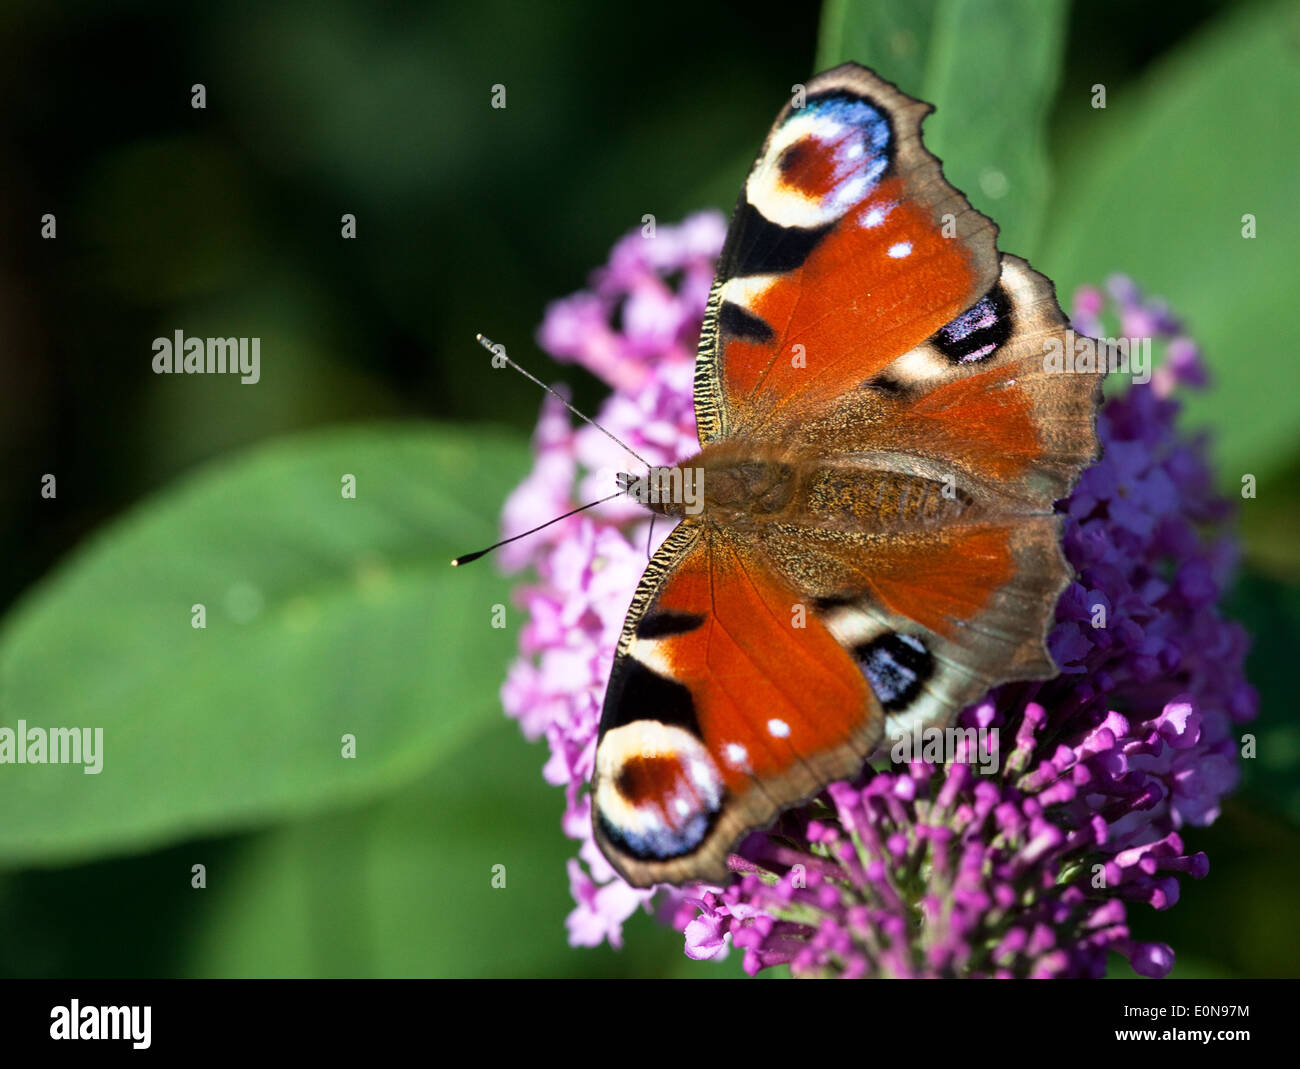 Tagpfauenauge (Inachis io) - European Peacock butterfly (Inachis io) - Stock Image